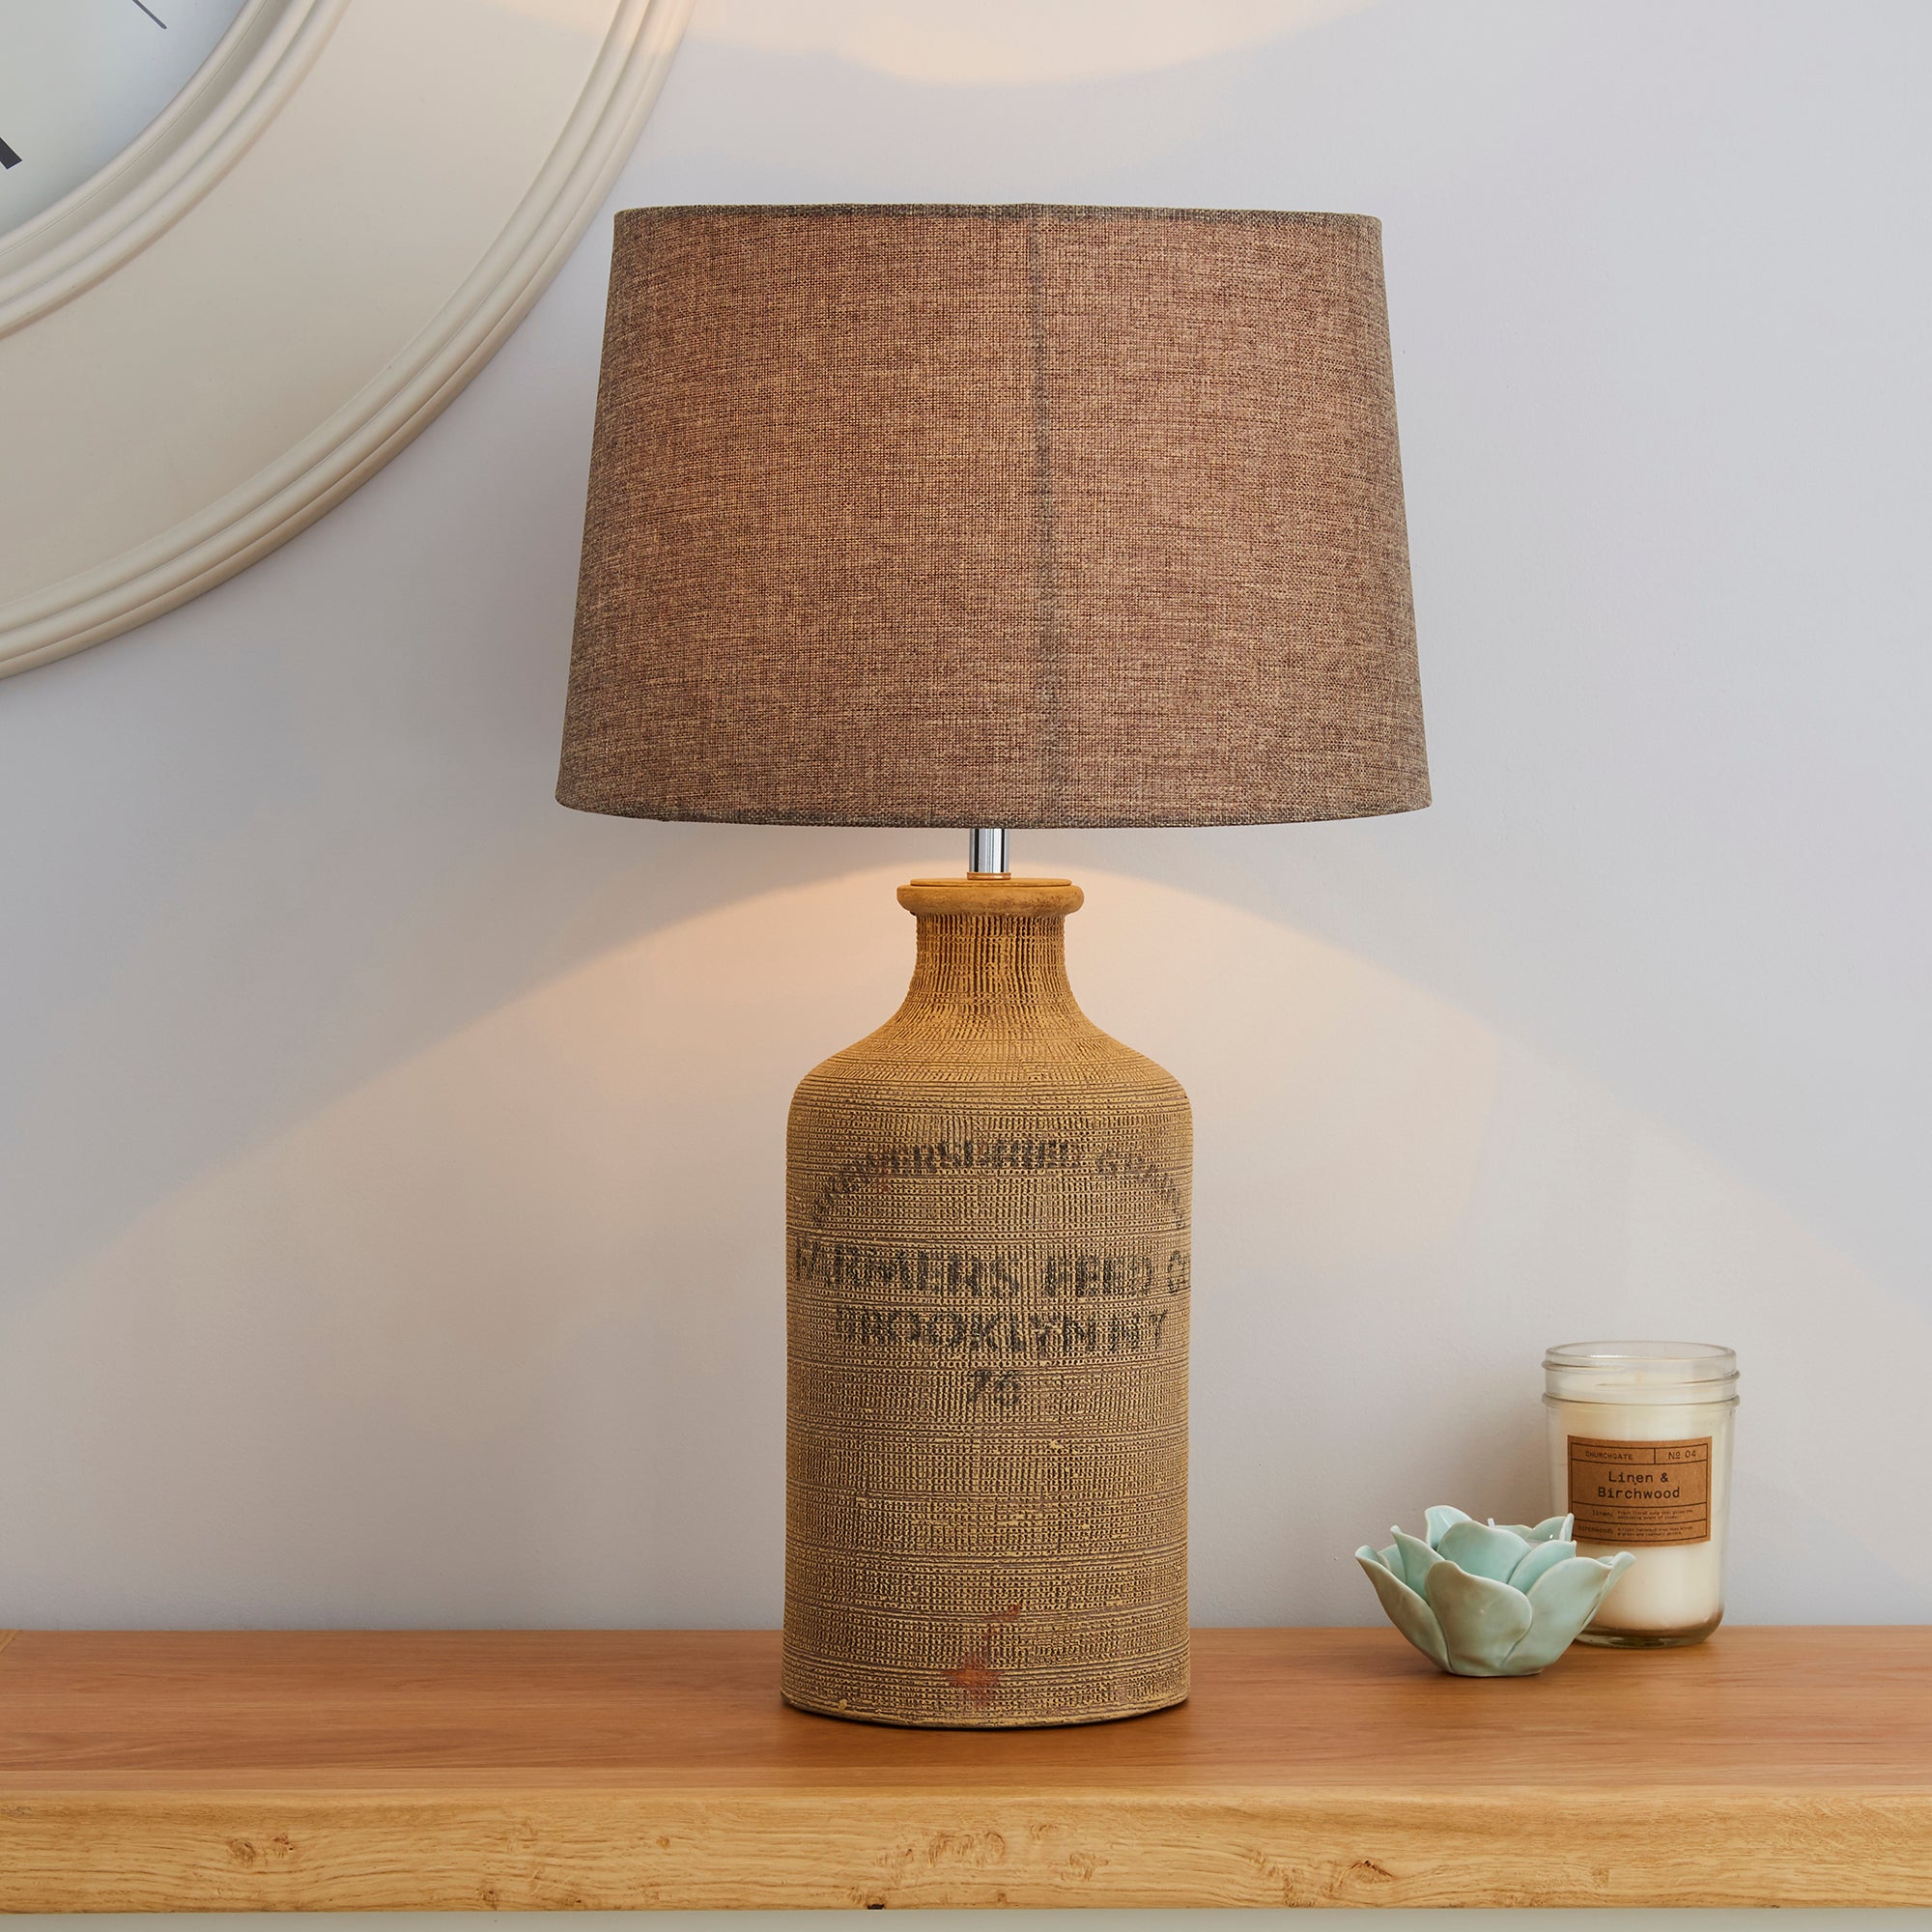 Albury Jute Sack Table Lamp